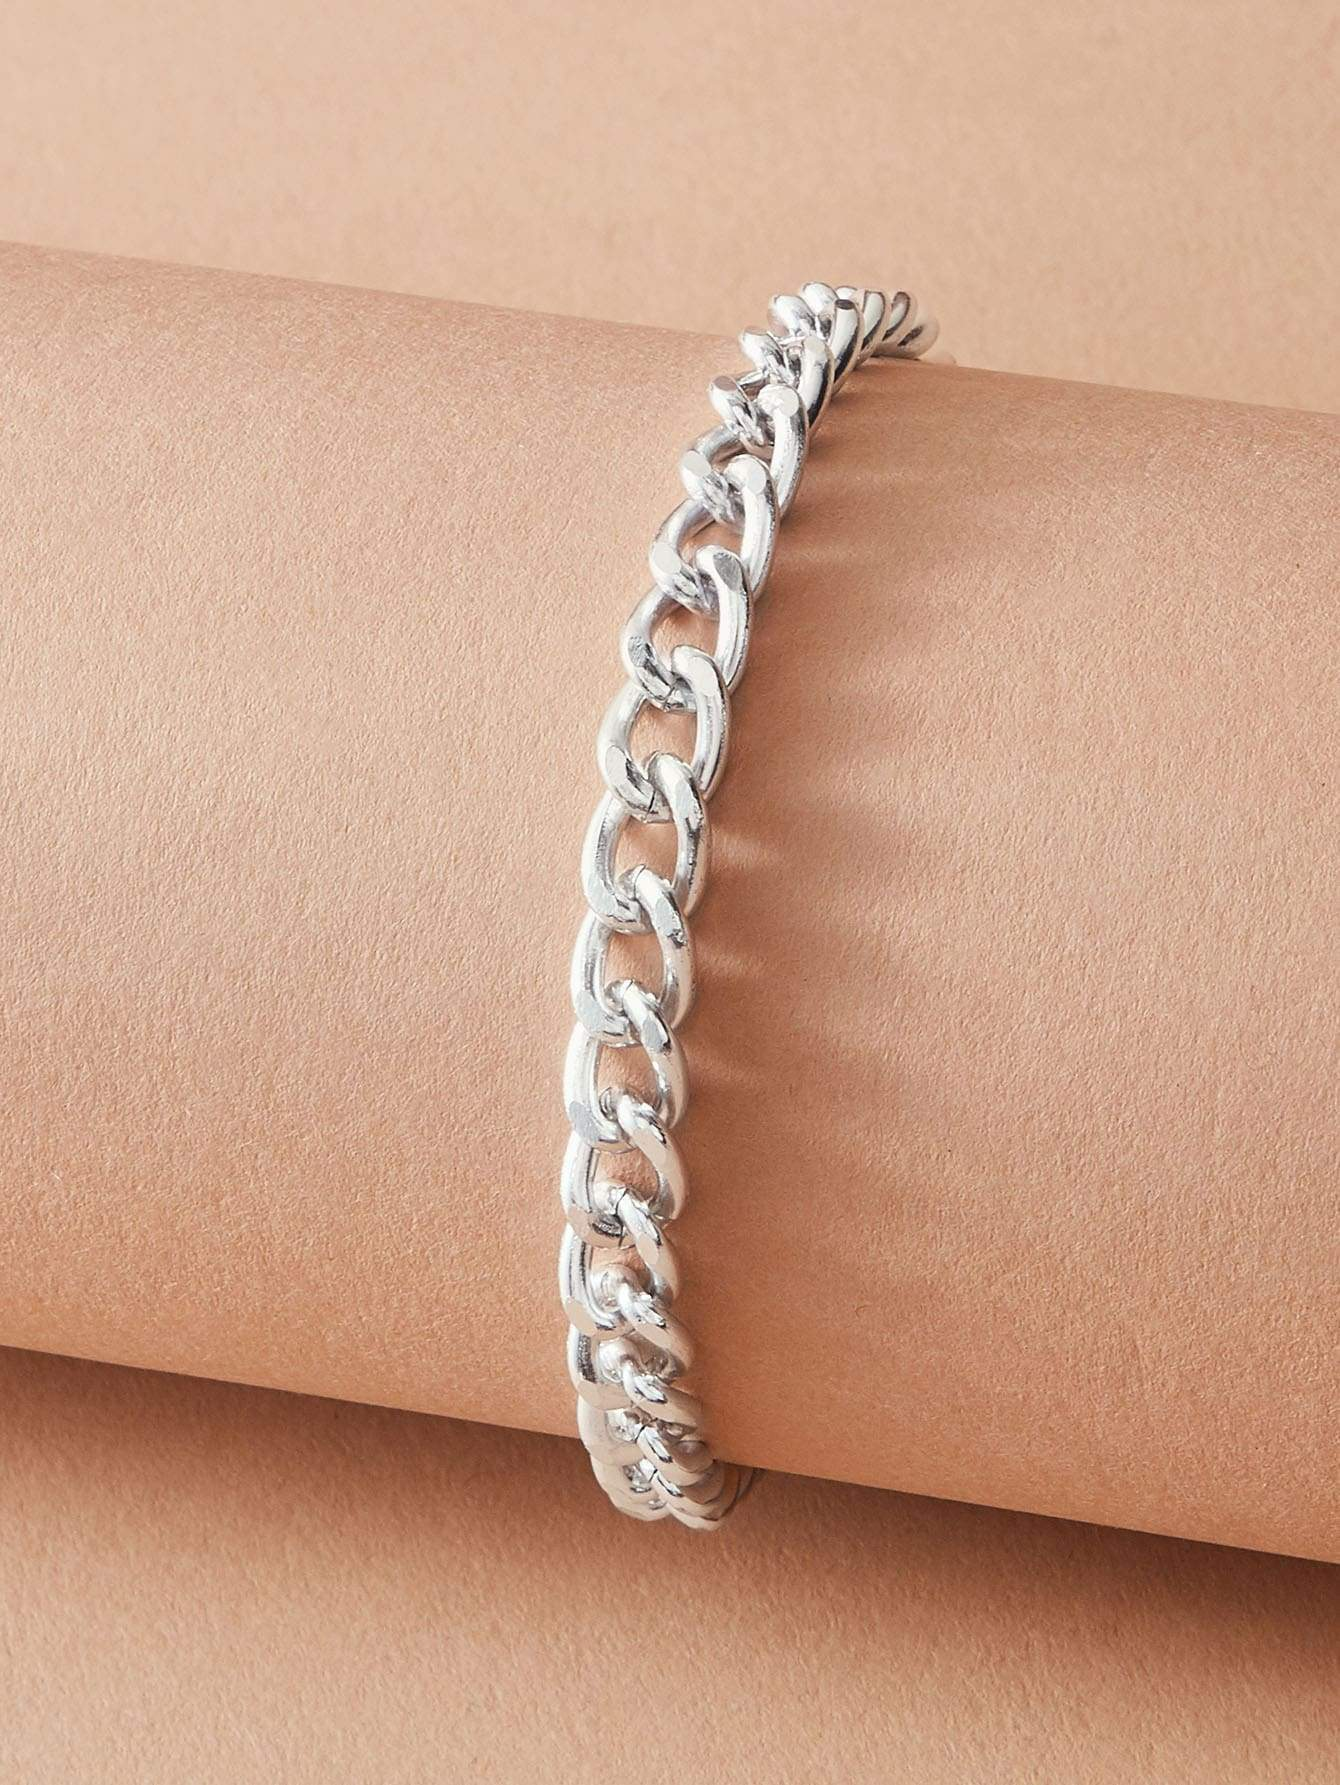 1pc Metallic Chain Bracelet - FLJ CORPORATIONS